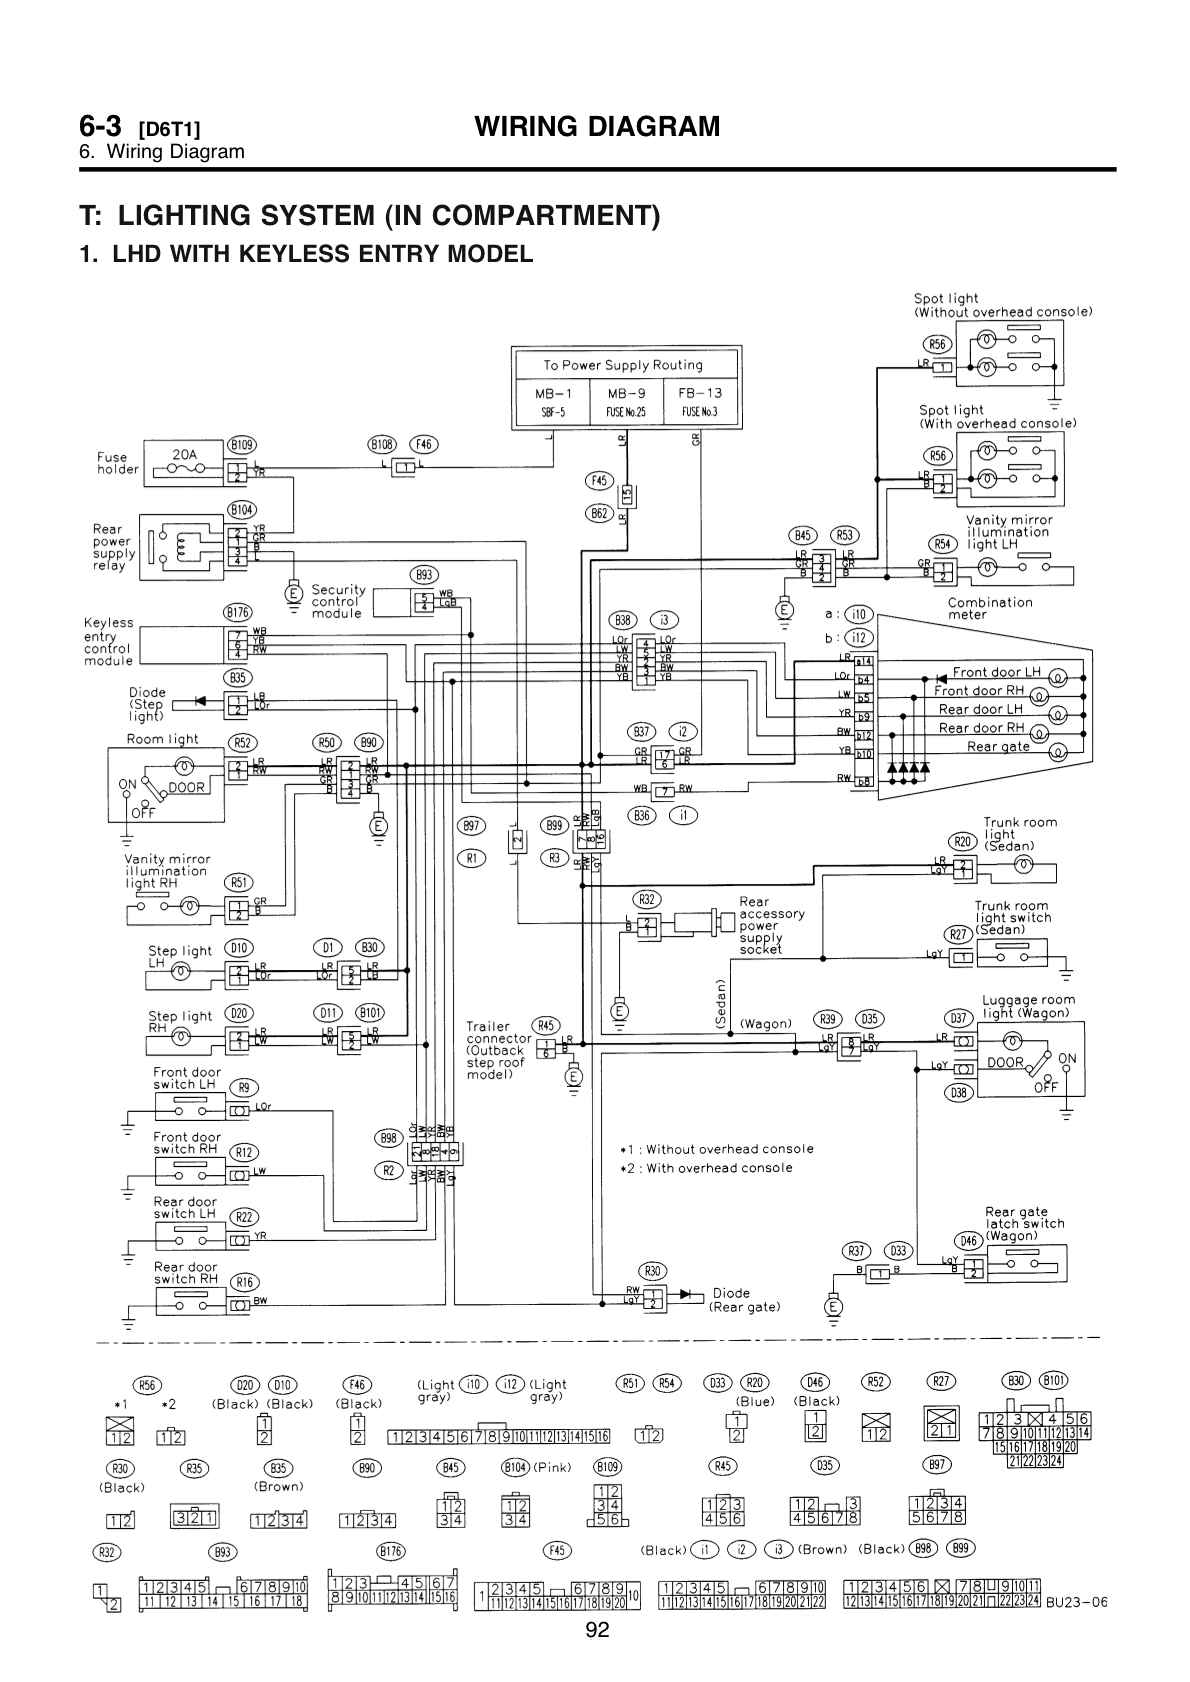 2014 subaru legacy wiring diagram installing heated mirrors on a car that came without them? subaru legacy wiring diagrams #6